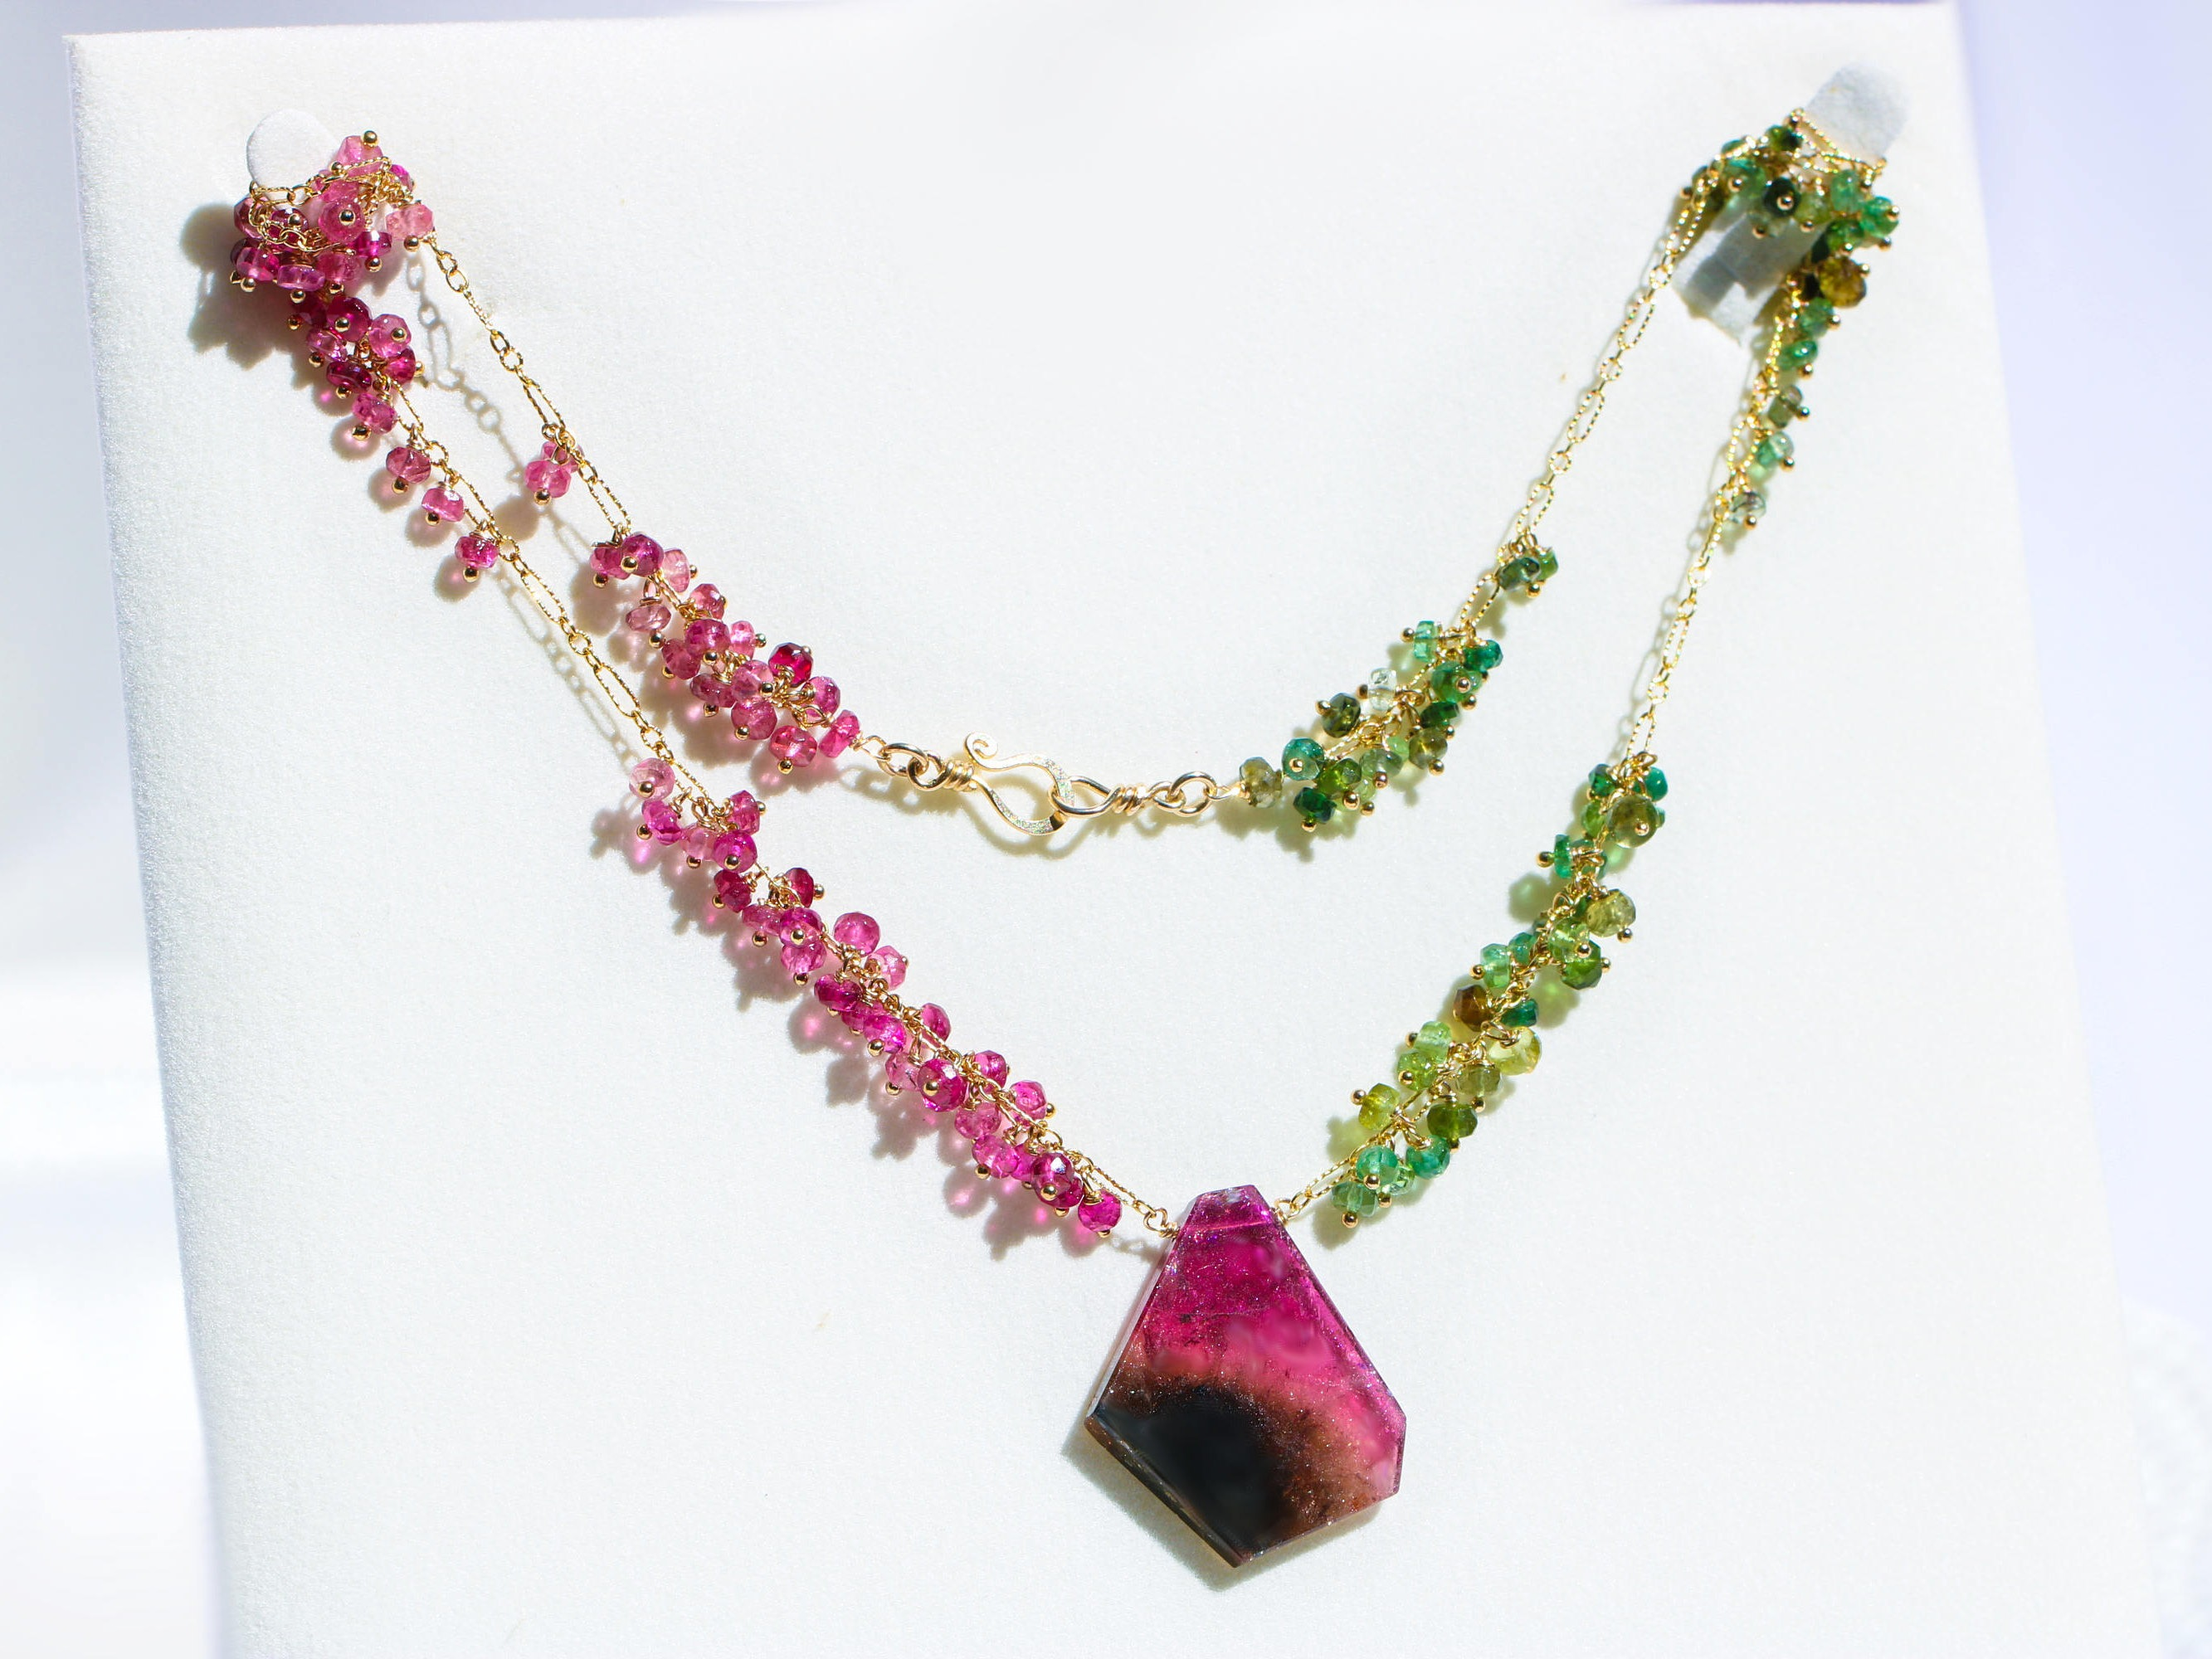 rough of jewellery products milan unique a tourmaline pink kind healing jewelry piece nct one necklace pendant deep giardinoblu cherry